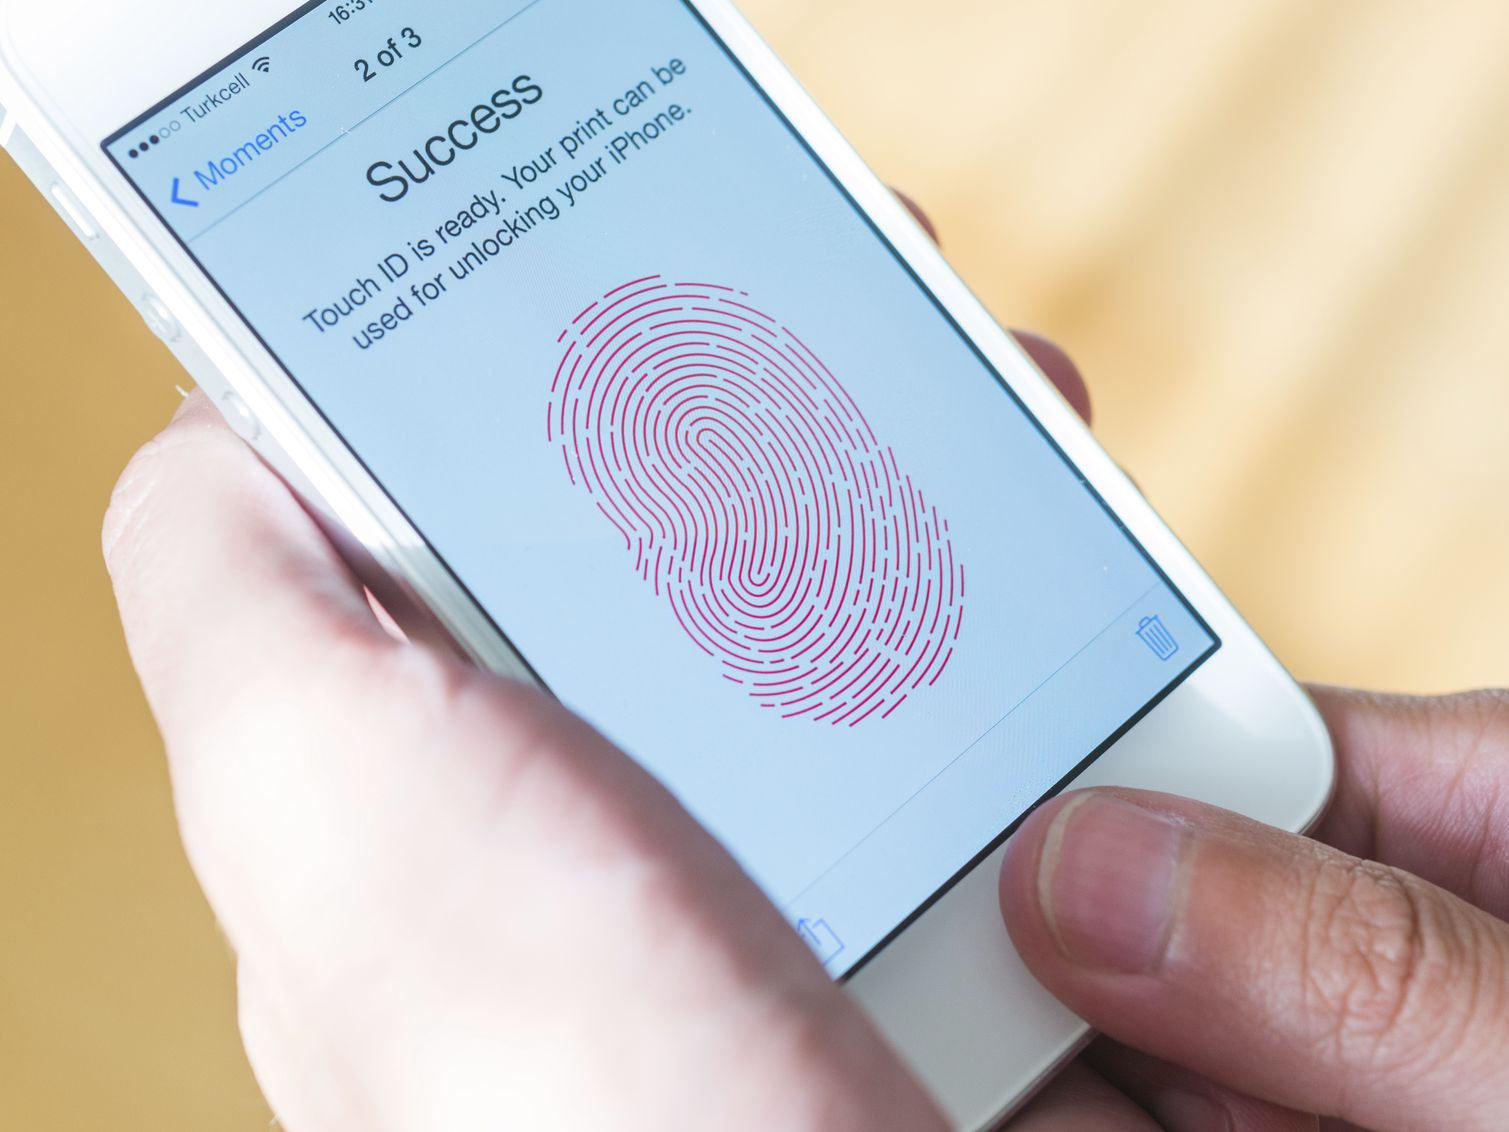 Top 7 Ways to Make Your iPhone More Secure